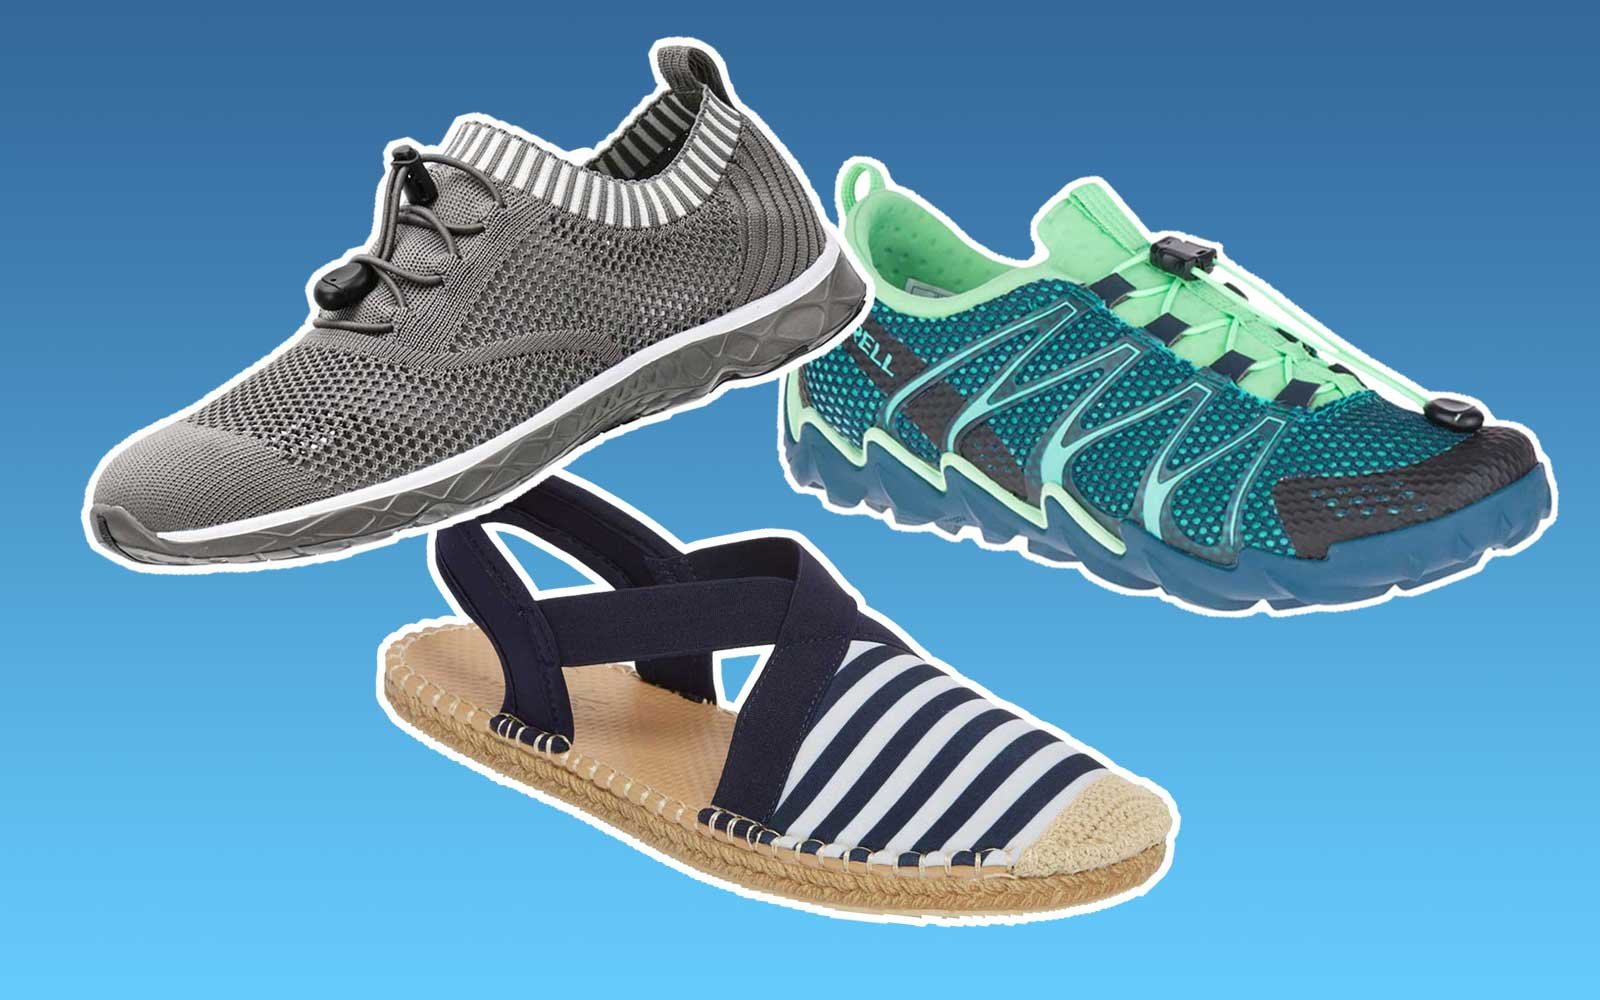 9cdbb12164a The Best Water Shoes for Women in 2019 | Travel + Leisure